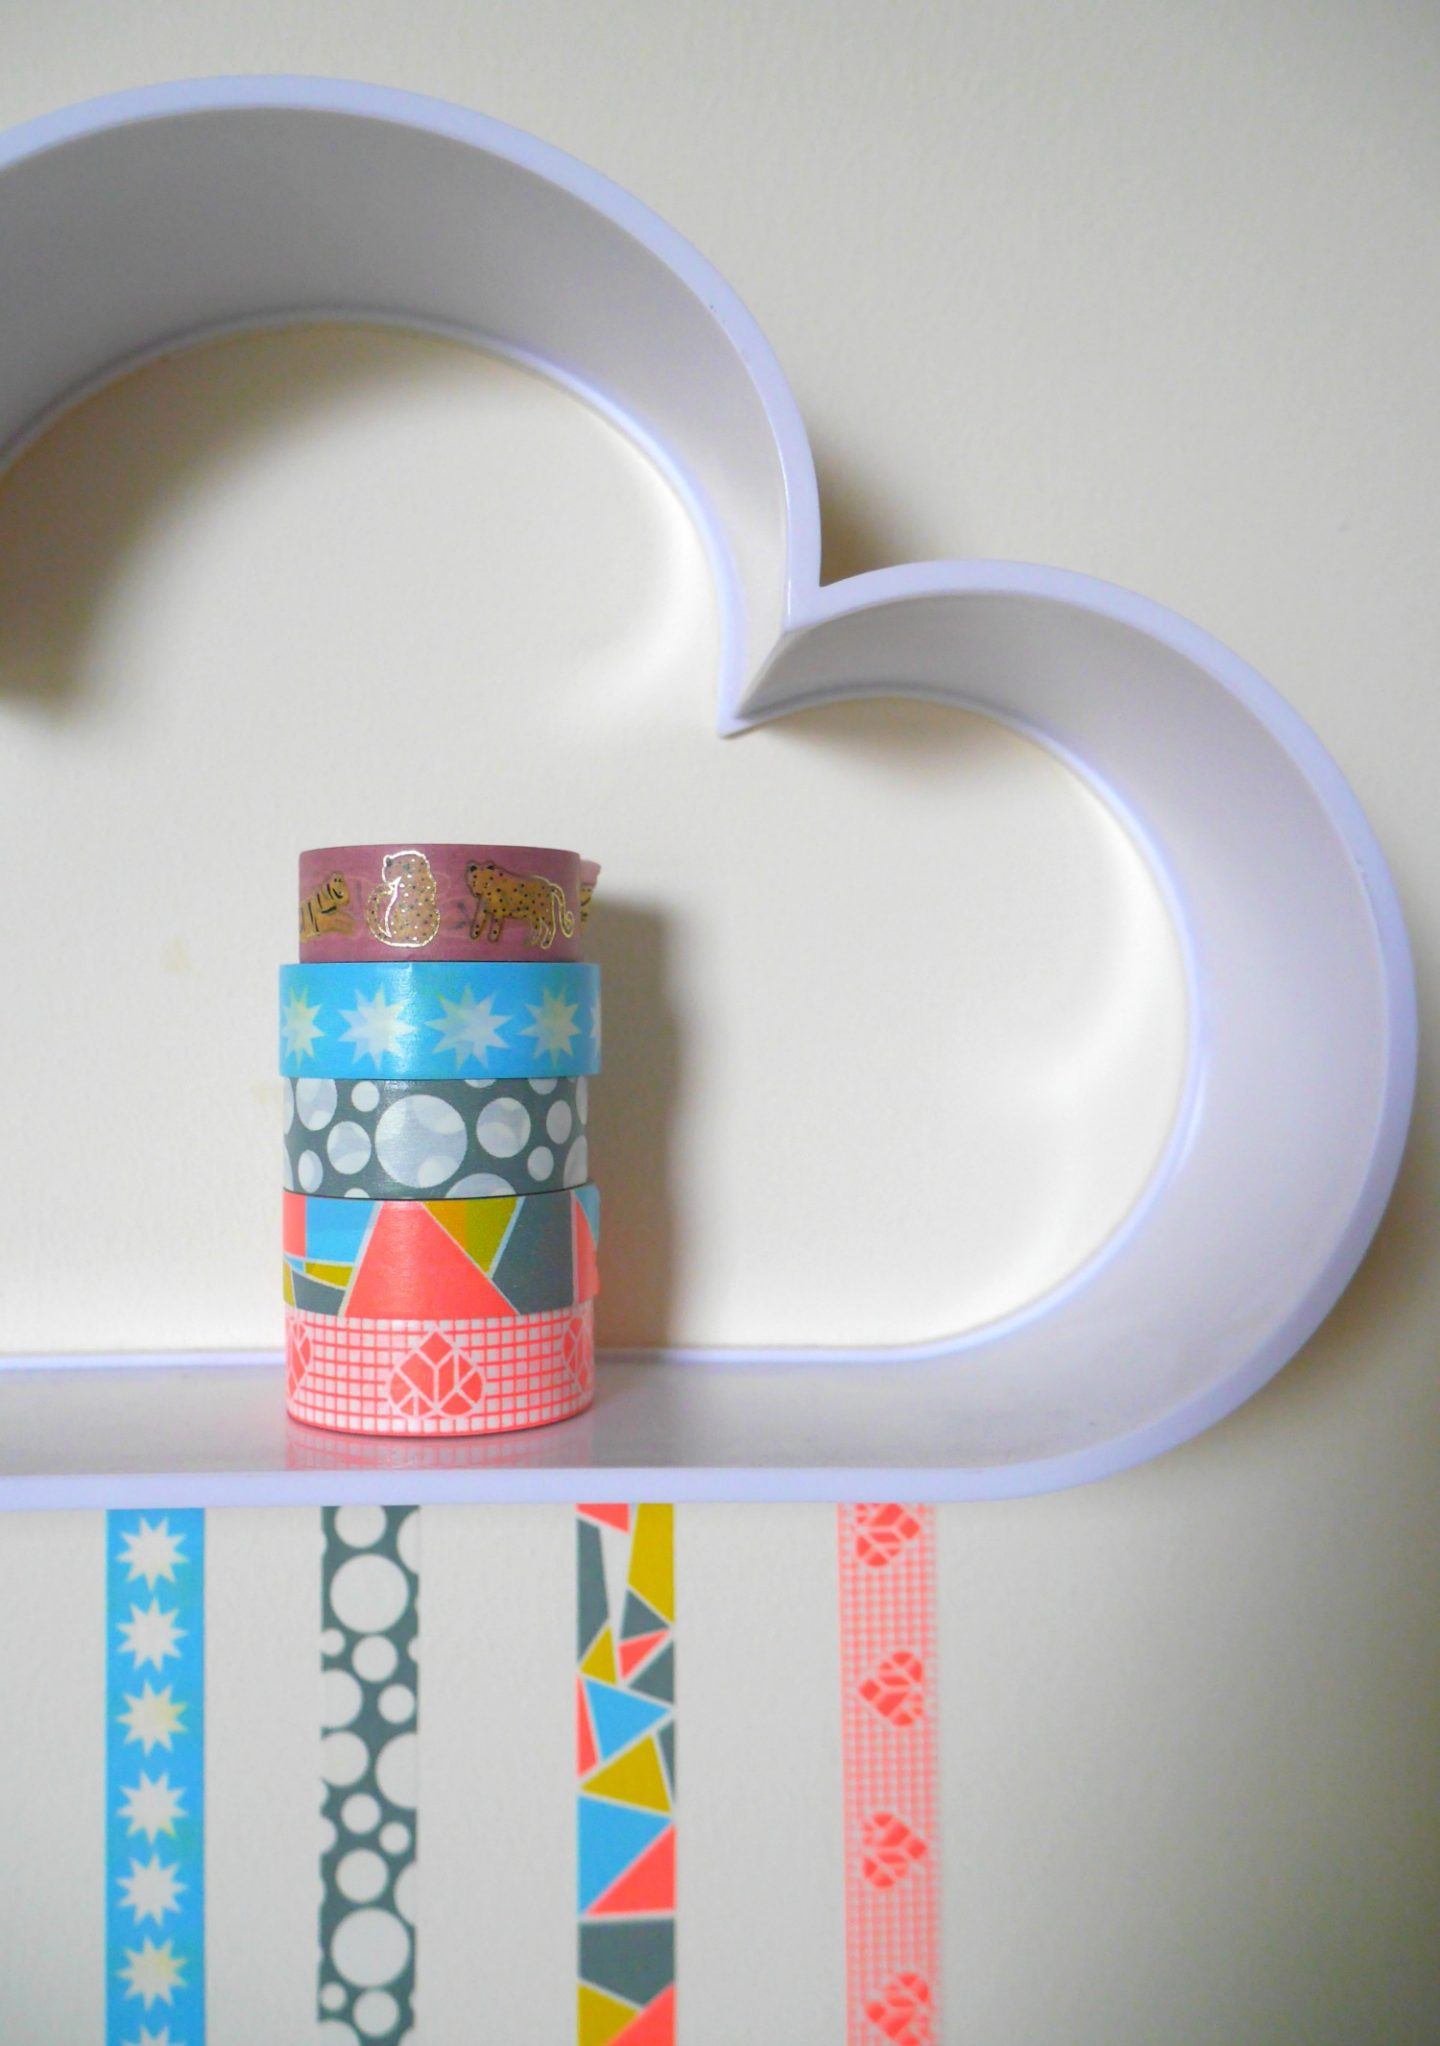 Cloud shelves - washi tape wall stickers